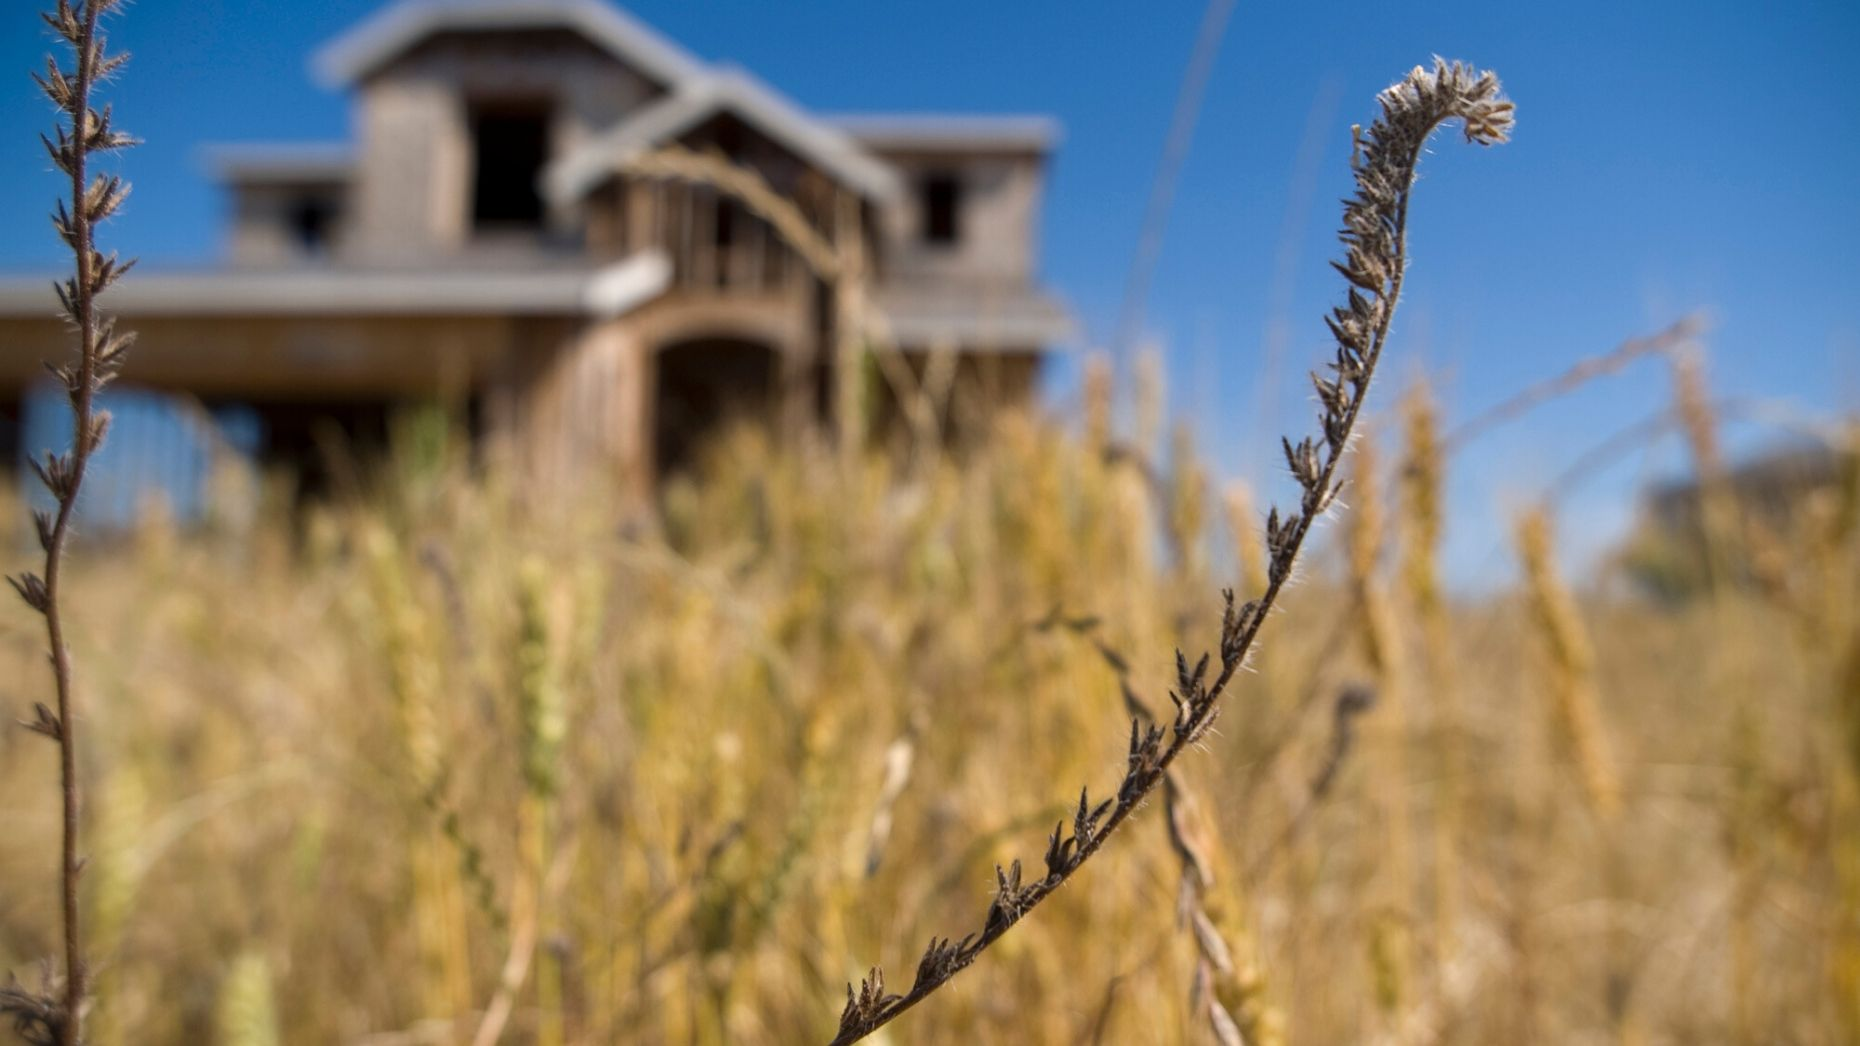 Amid halt on foreclosures, zombie property rate remains constant